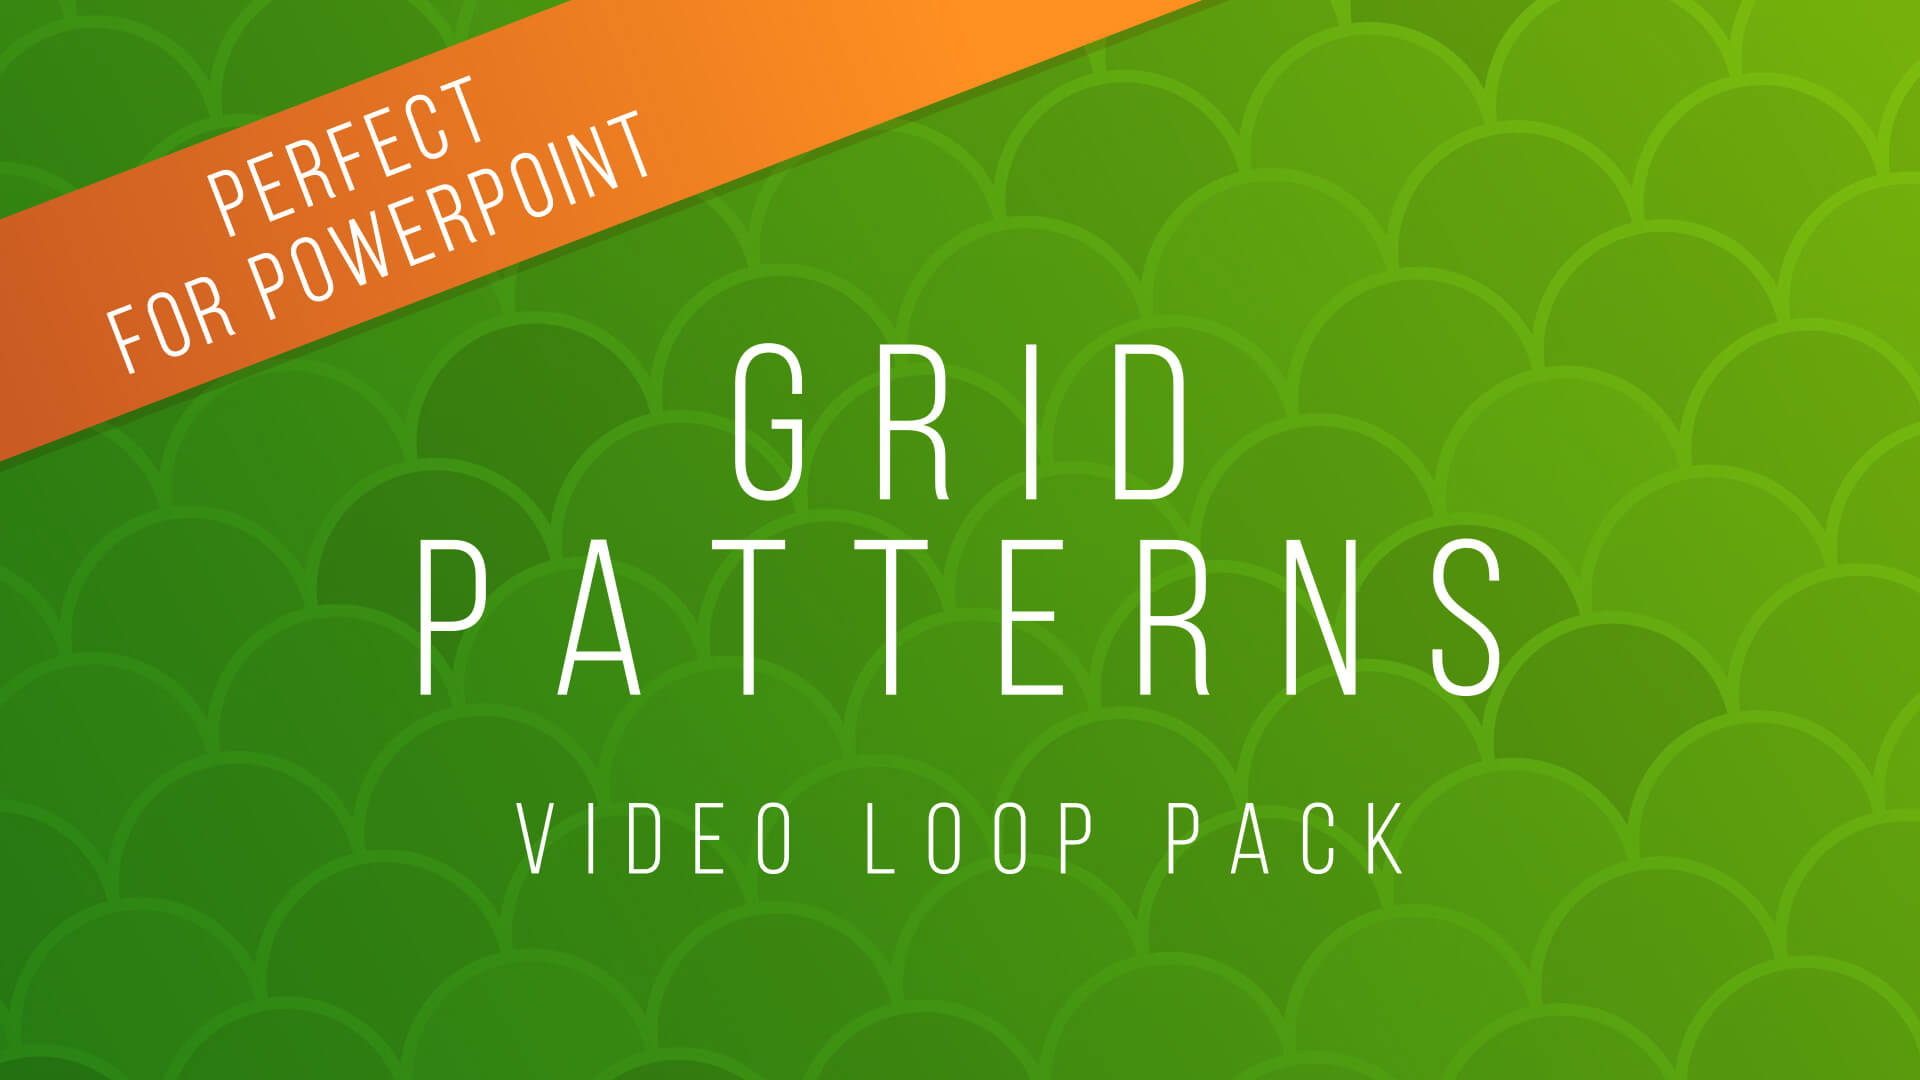 Grid Pattern Animated Background Pack for Powerpoint